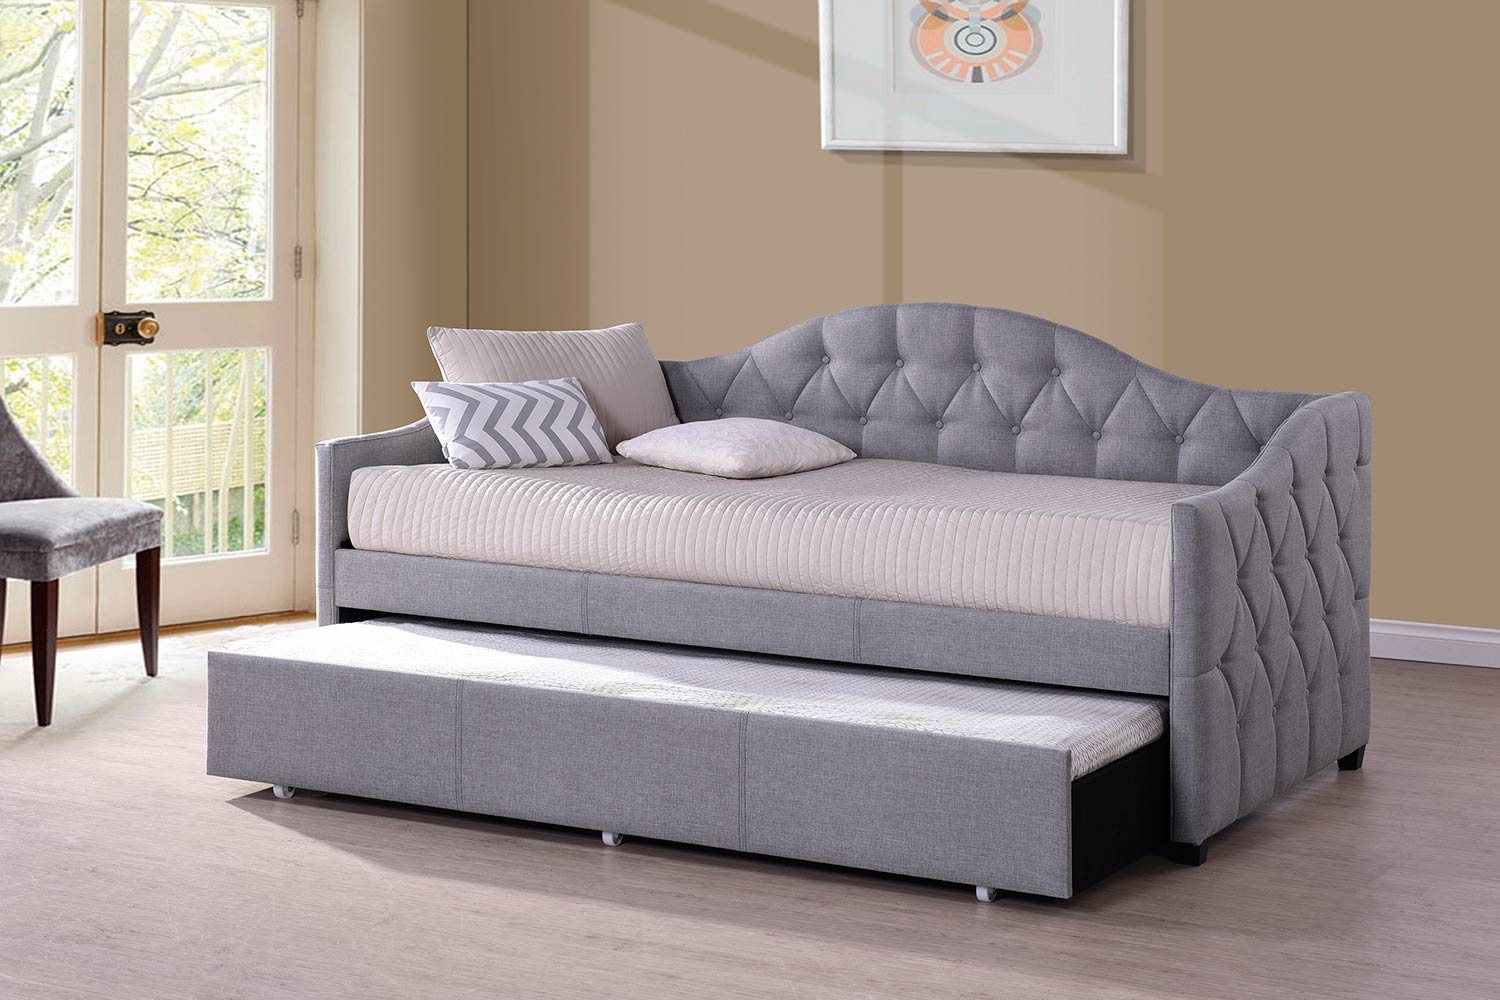 Hillsdale Jamie Daybed with Trundle - Grey Fabric